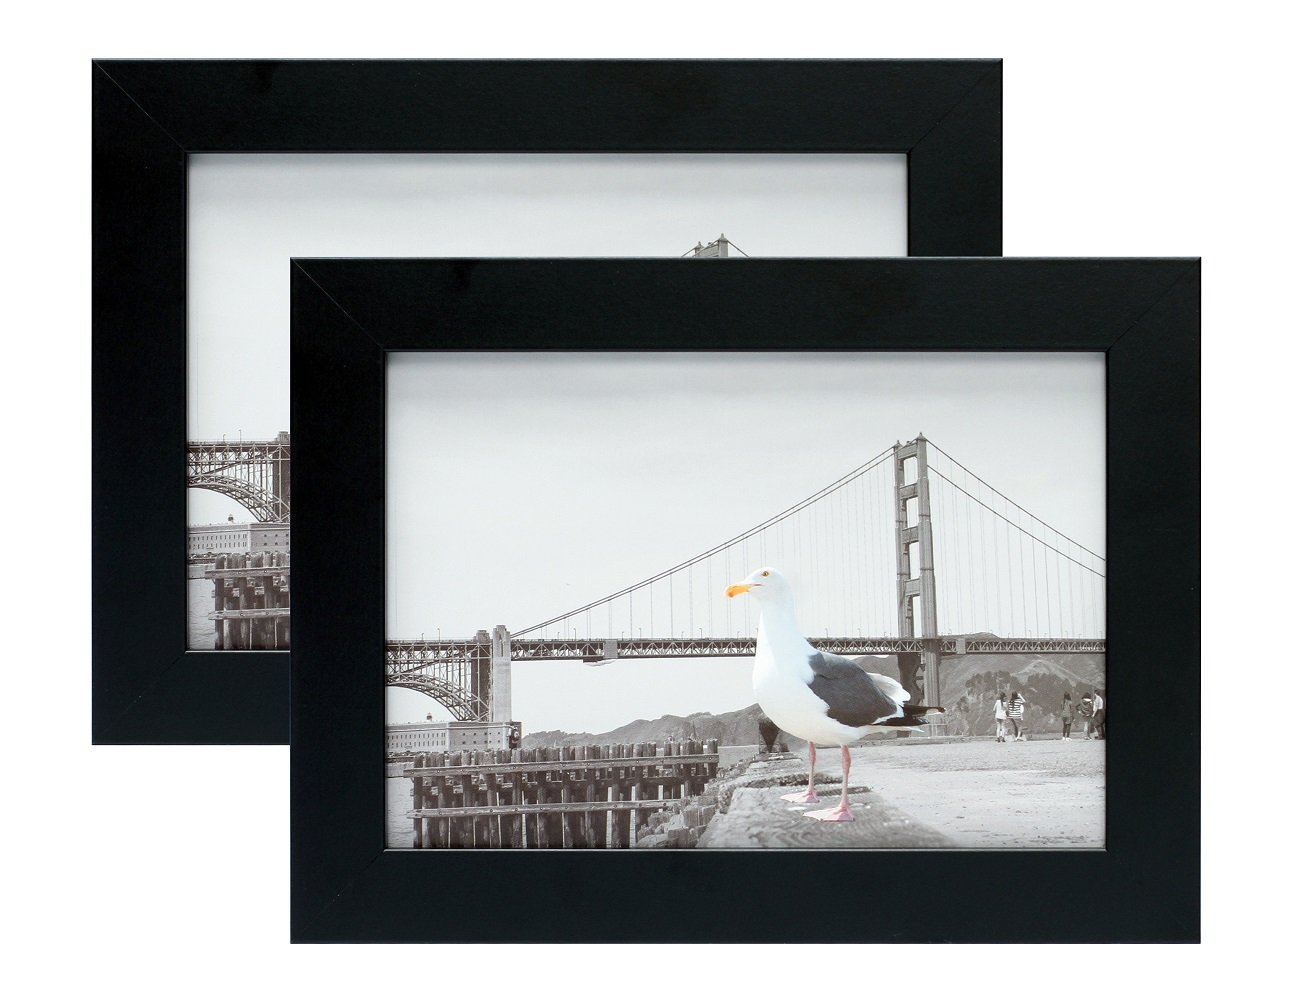 Frametory, Set of Two 5x7 Black Picture Frame - Made to Display Pictures 5x7 Photo - Wide Molding Real Glass - Preinstalled Wall Mounting Hardware (5x7 - Set of 2, Black)